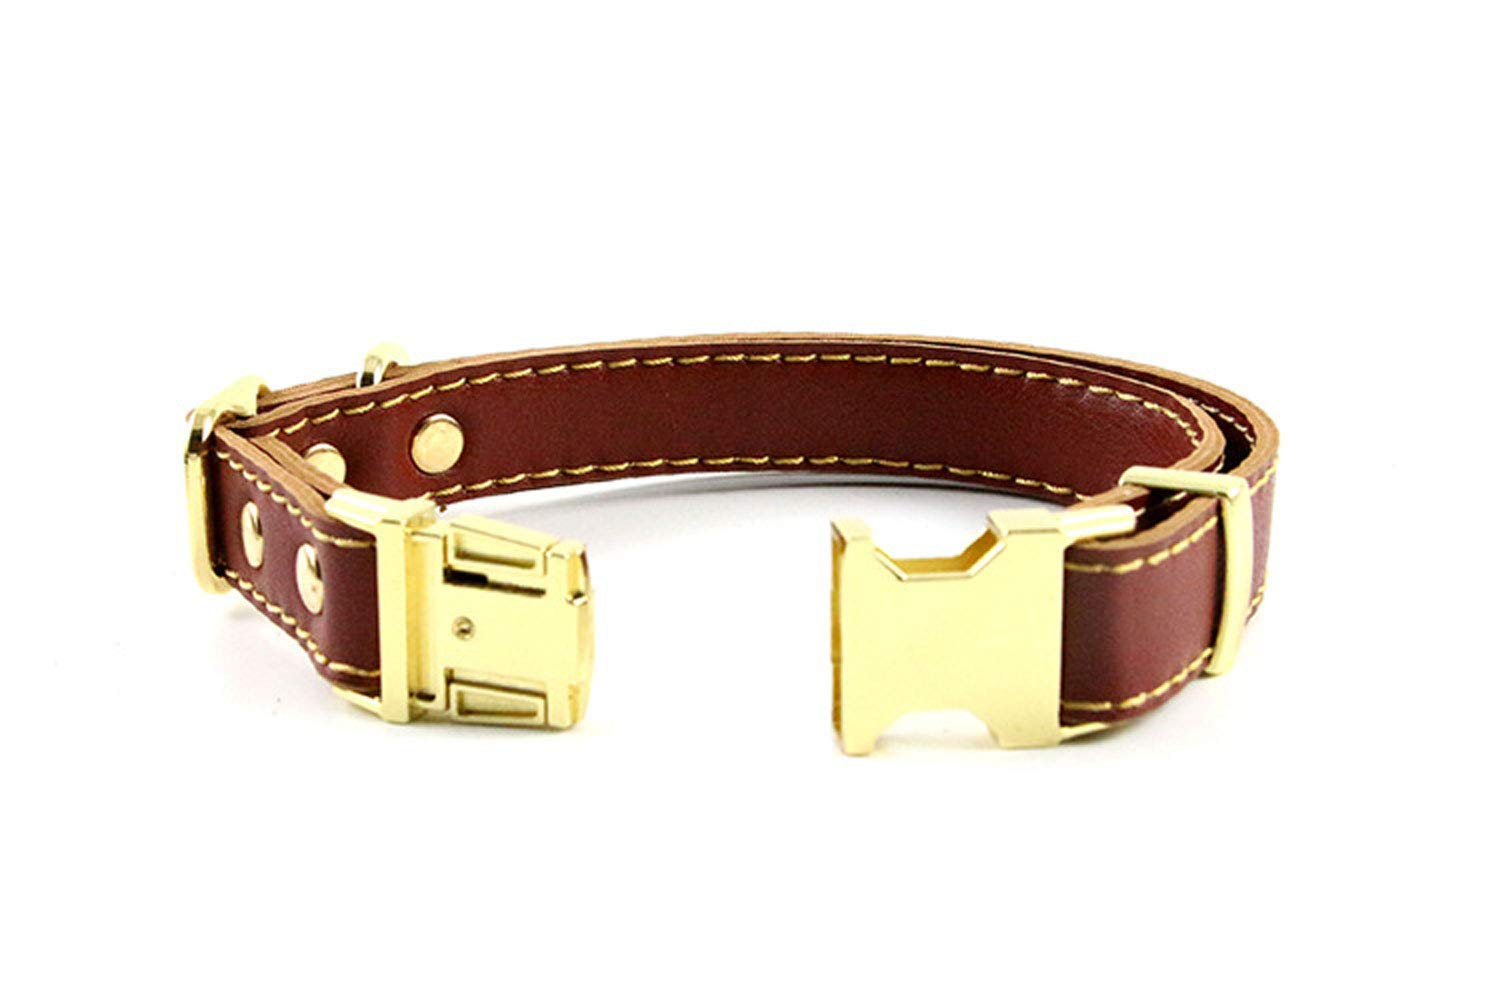 Brown S Brown S Soft Leather Dog Collar Adjustable Adjustable for Medium and Large Dog Pet Supplies,Brown,S